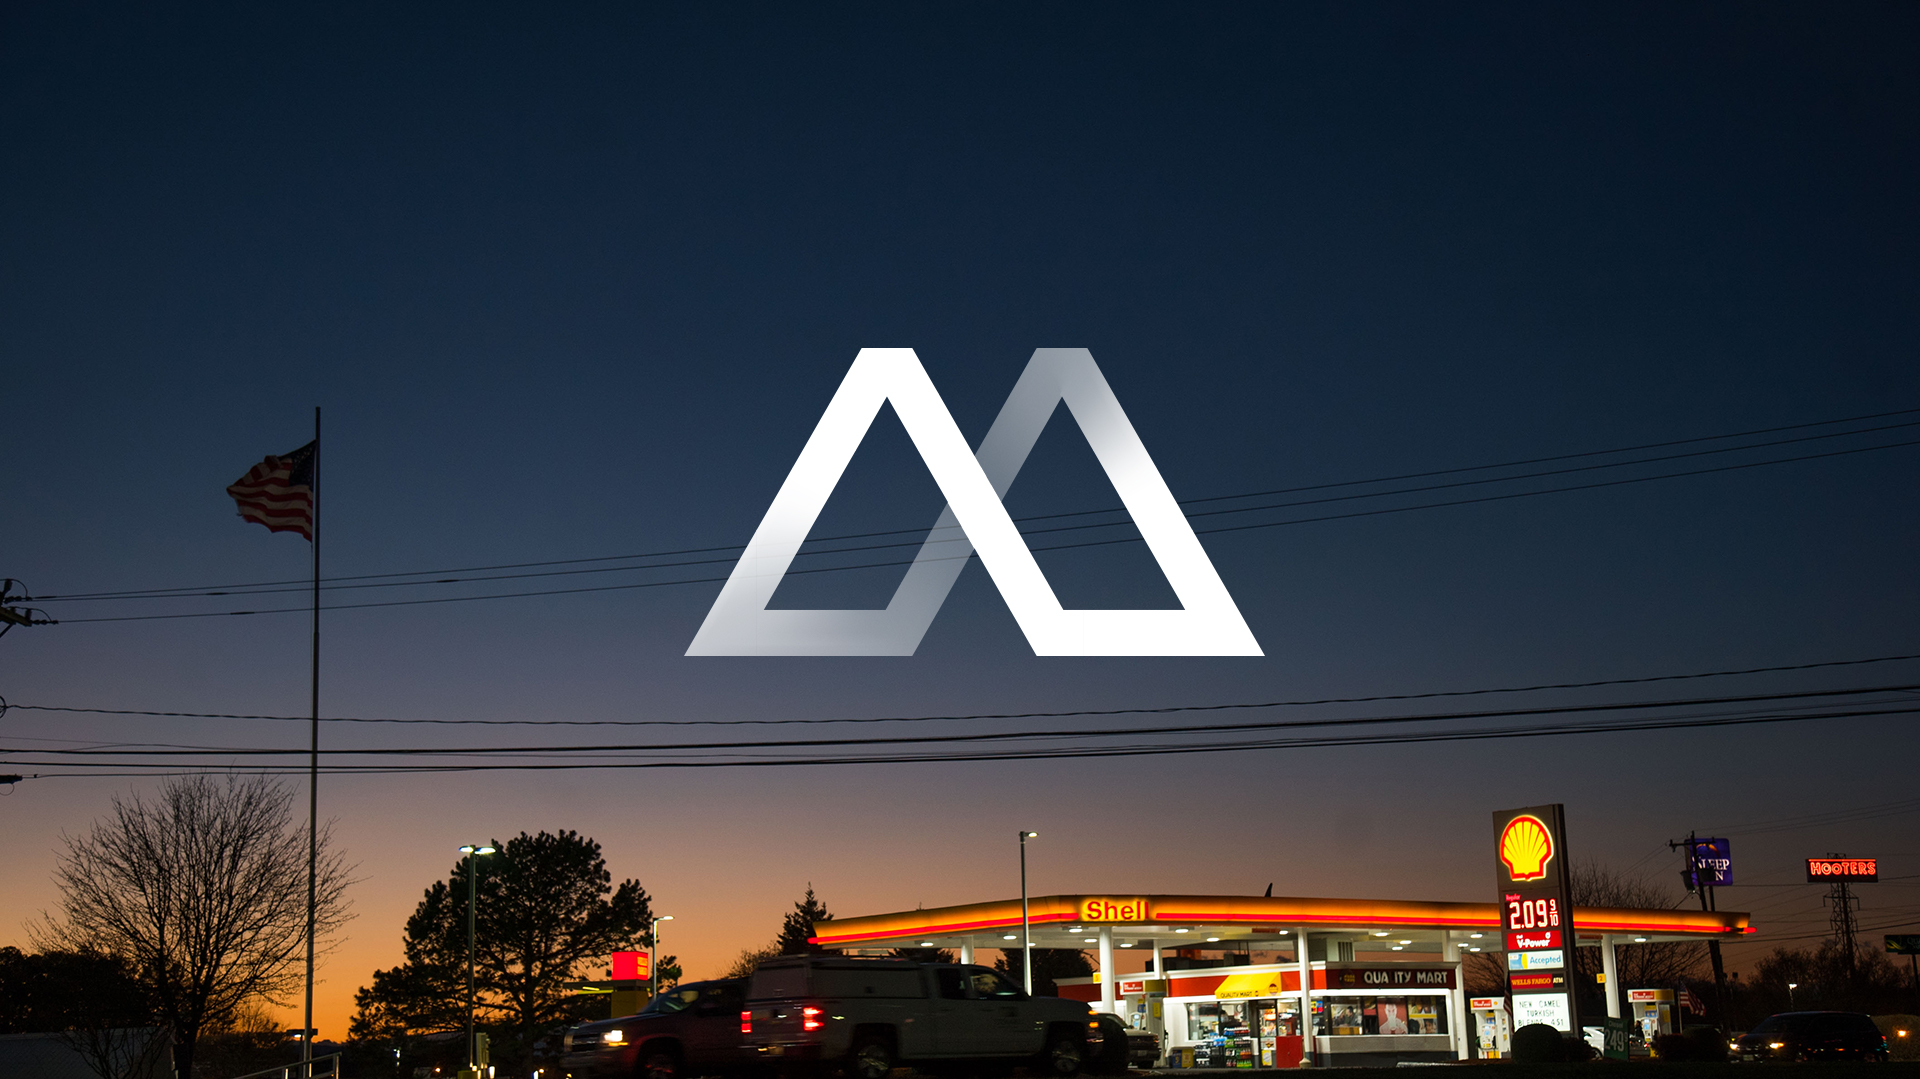 Manto films logo superimposed over an American sunset